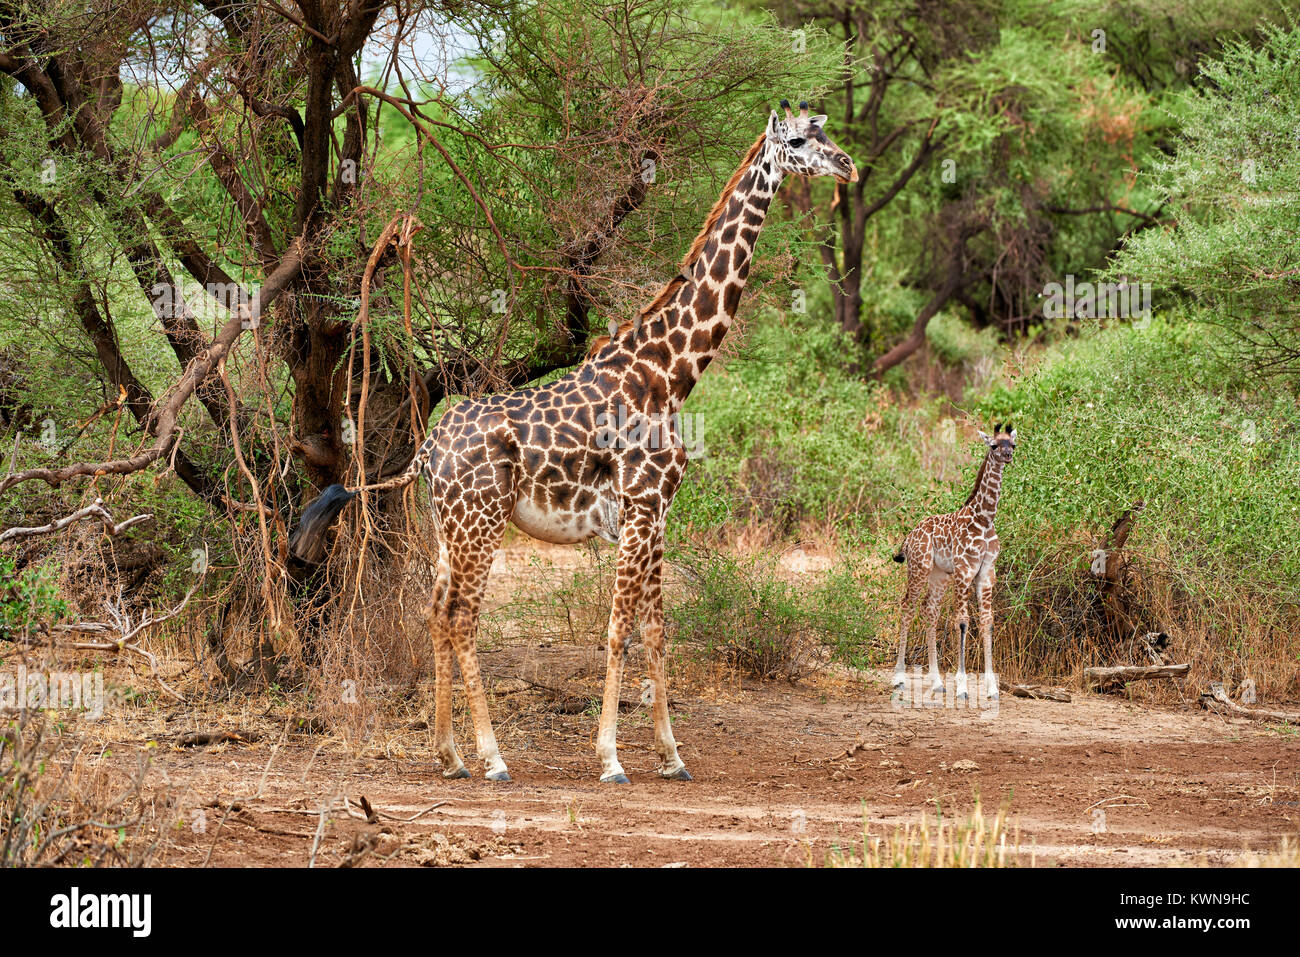 kleine Masai-Giraffe mit Mutter, Lake-Manyara-Nationalpark Tansania, Afrika |young Masai Giraffe wirh mother, Lake - Stock Image